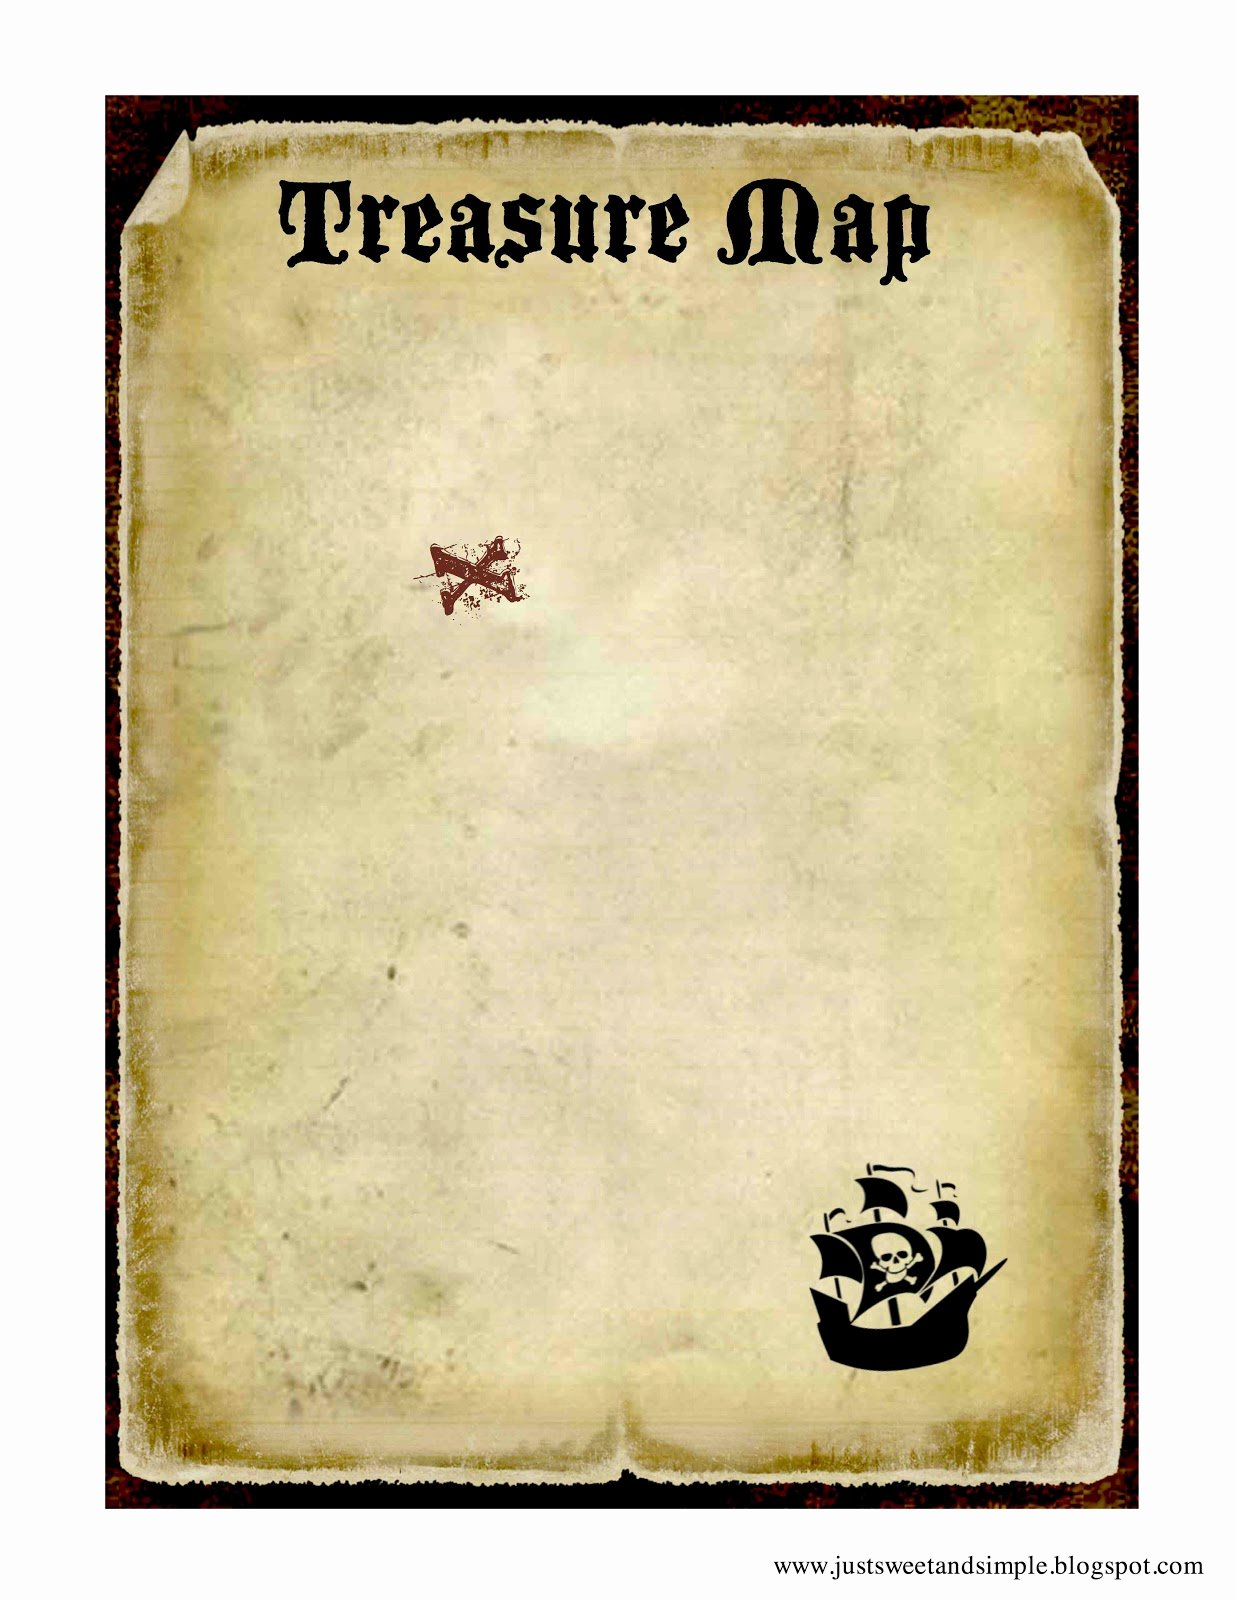 Printable Blank Treasure Map Awesome Just Sweet and Simple Kids Pirate Party